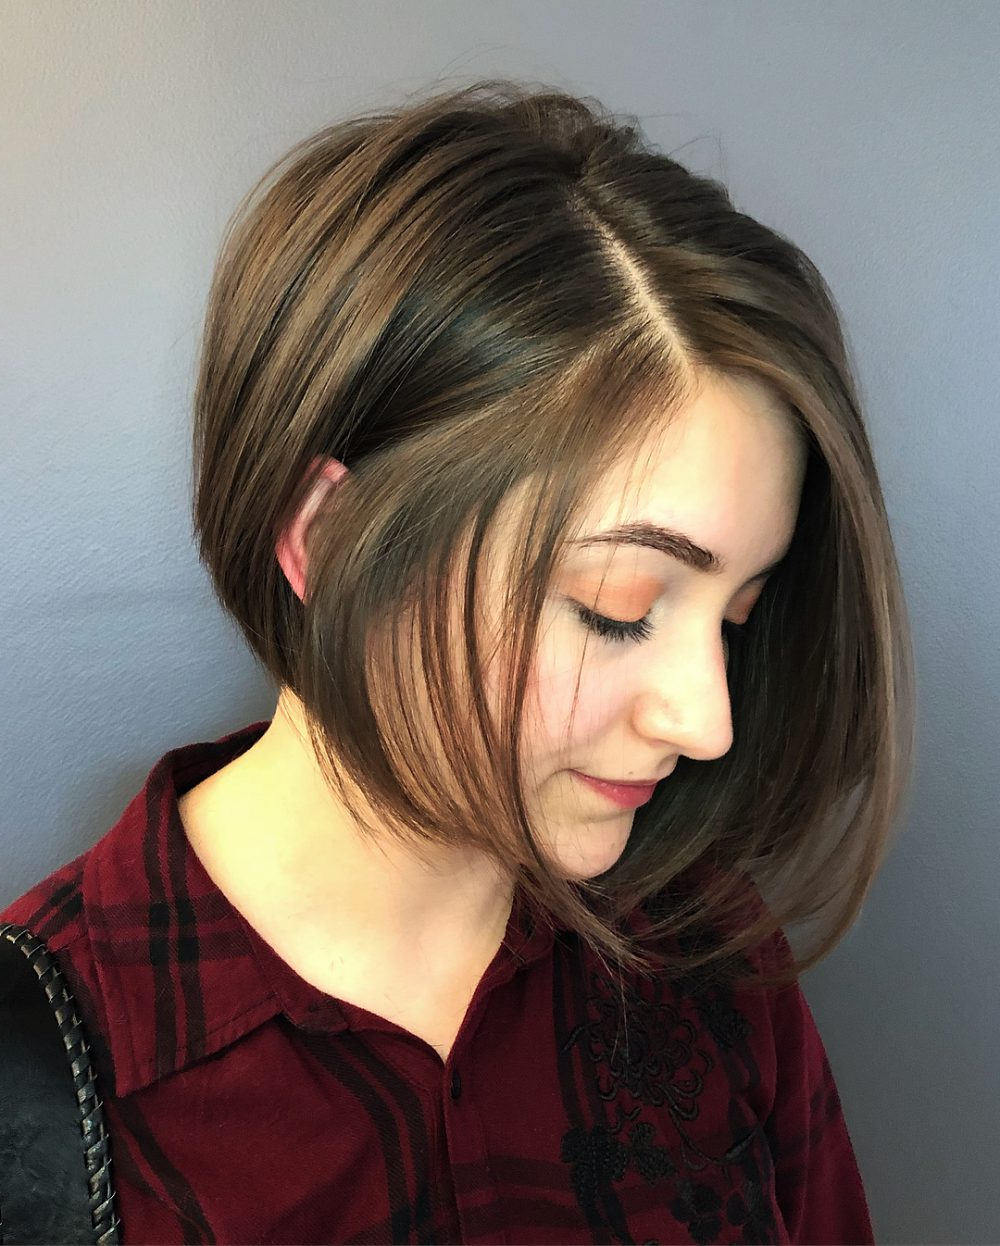 Newest Low Maintenance Medium Haircuts For Round Faces Regarding 33 Most Flattering Short Hairstyles For Round Faces (View 12 of 20)